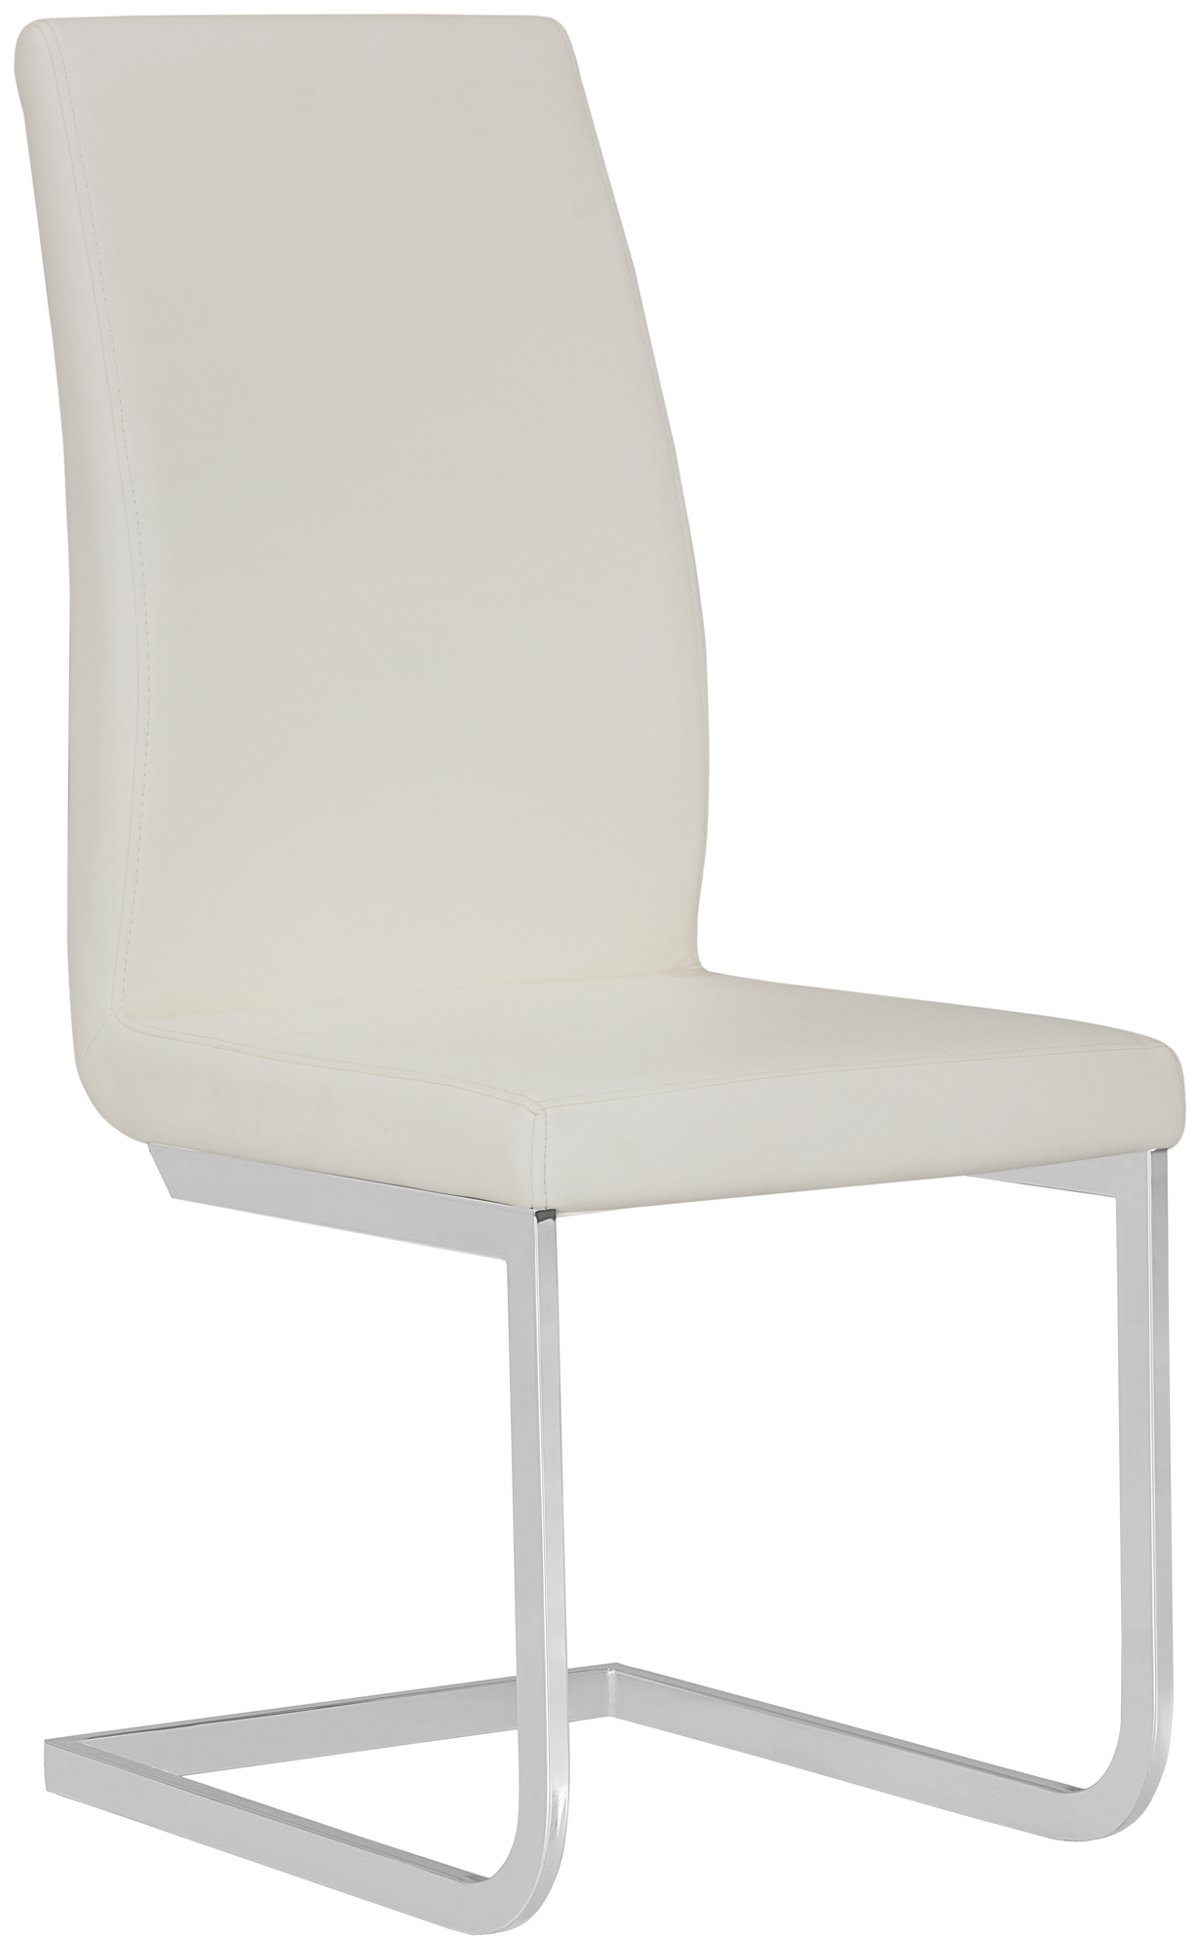 City Furniture Harley White Glass Table & 4 Upholstered Chairs